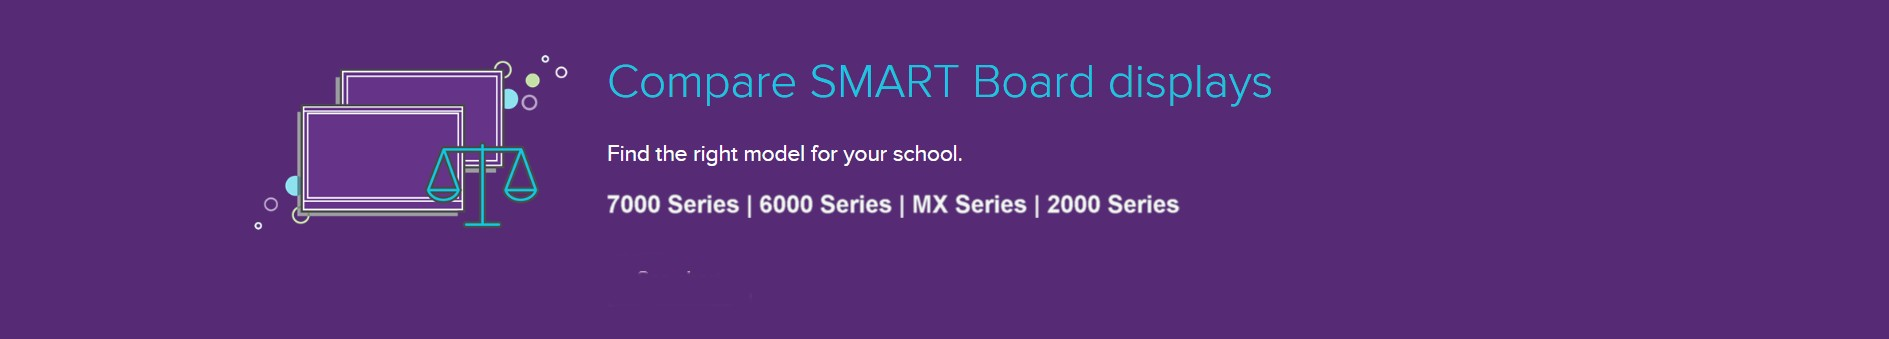 Compare Smart Board Displays